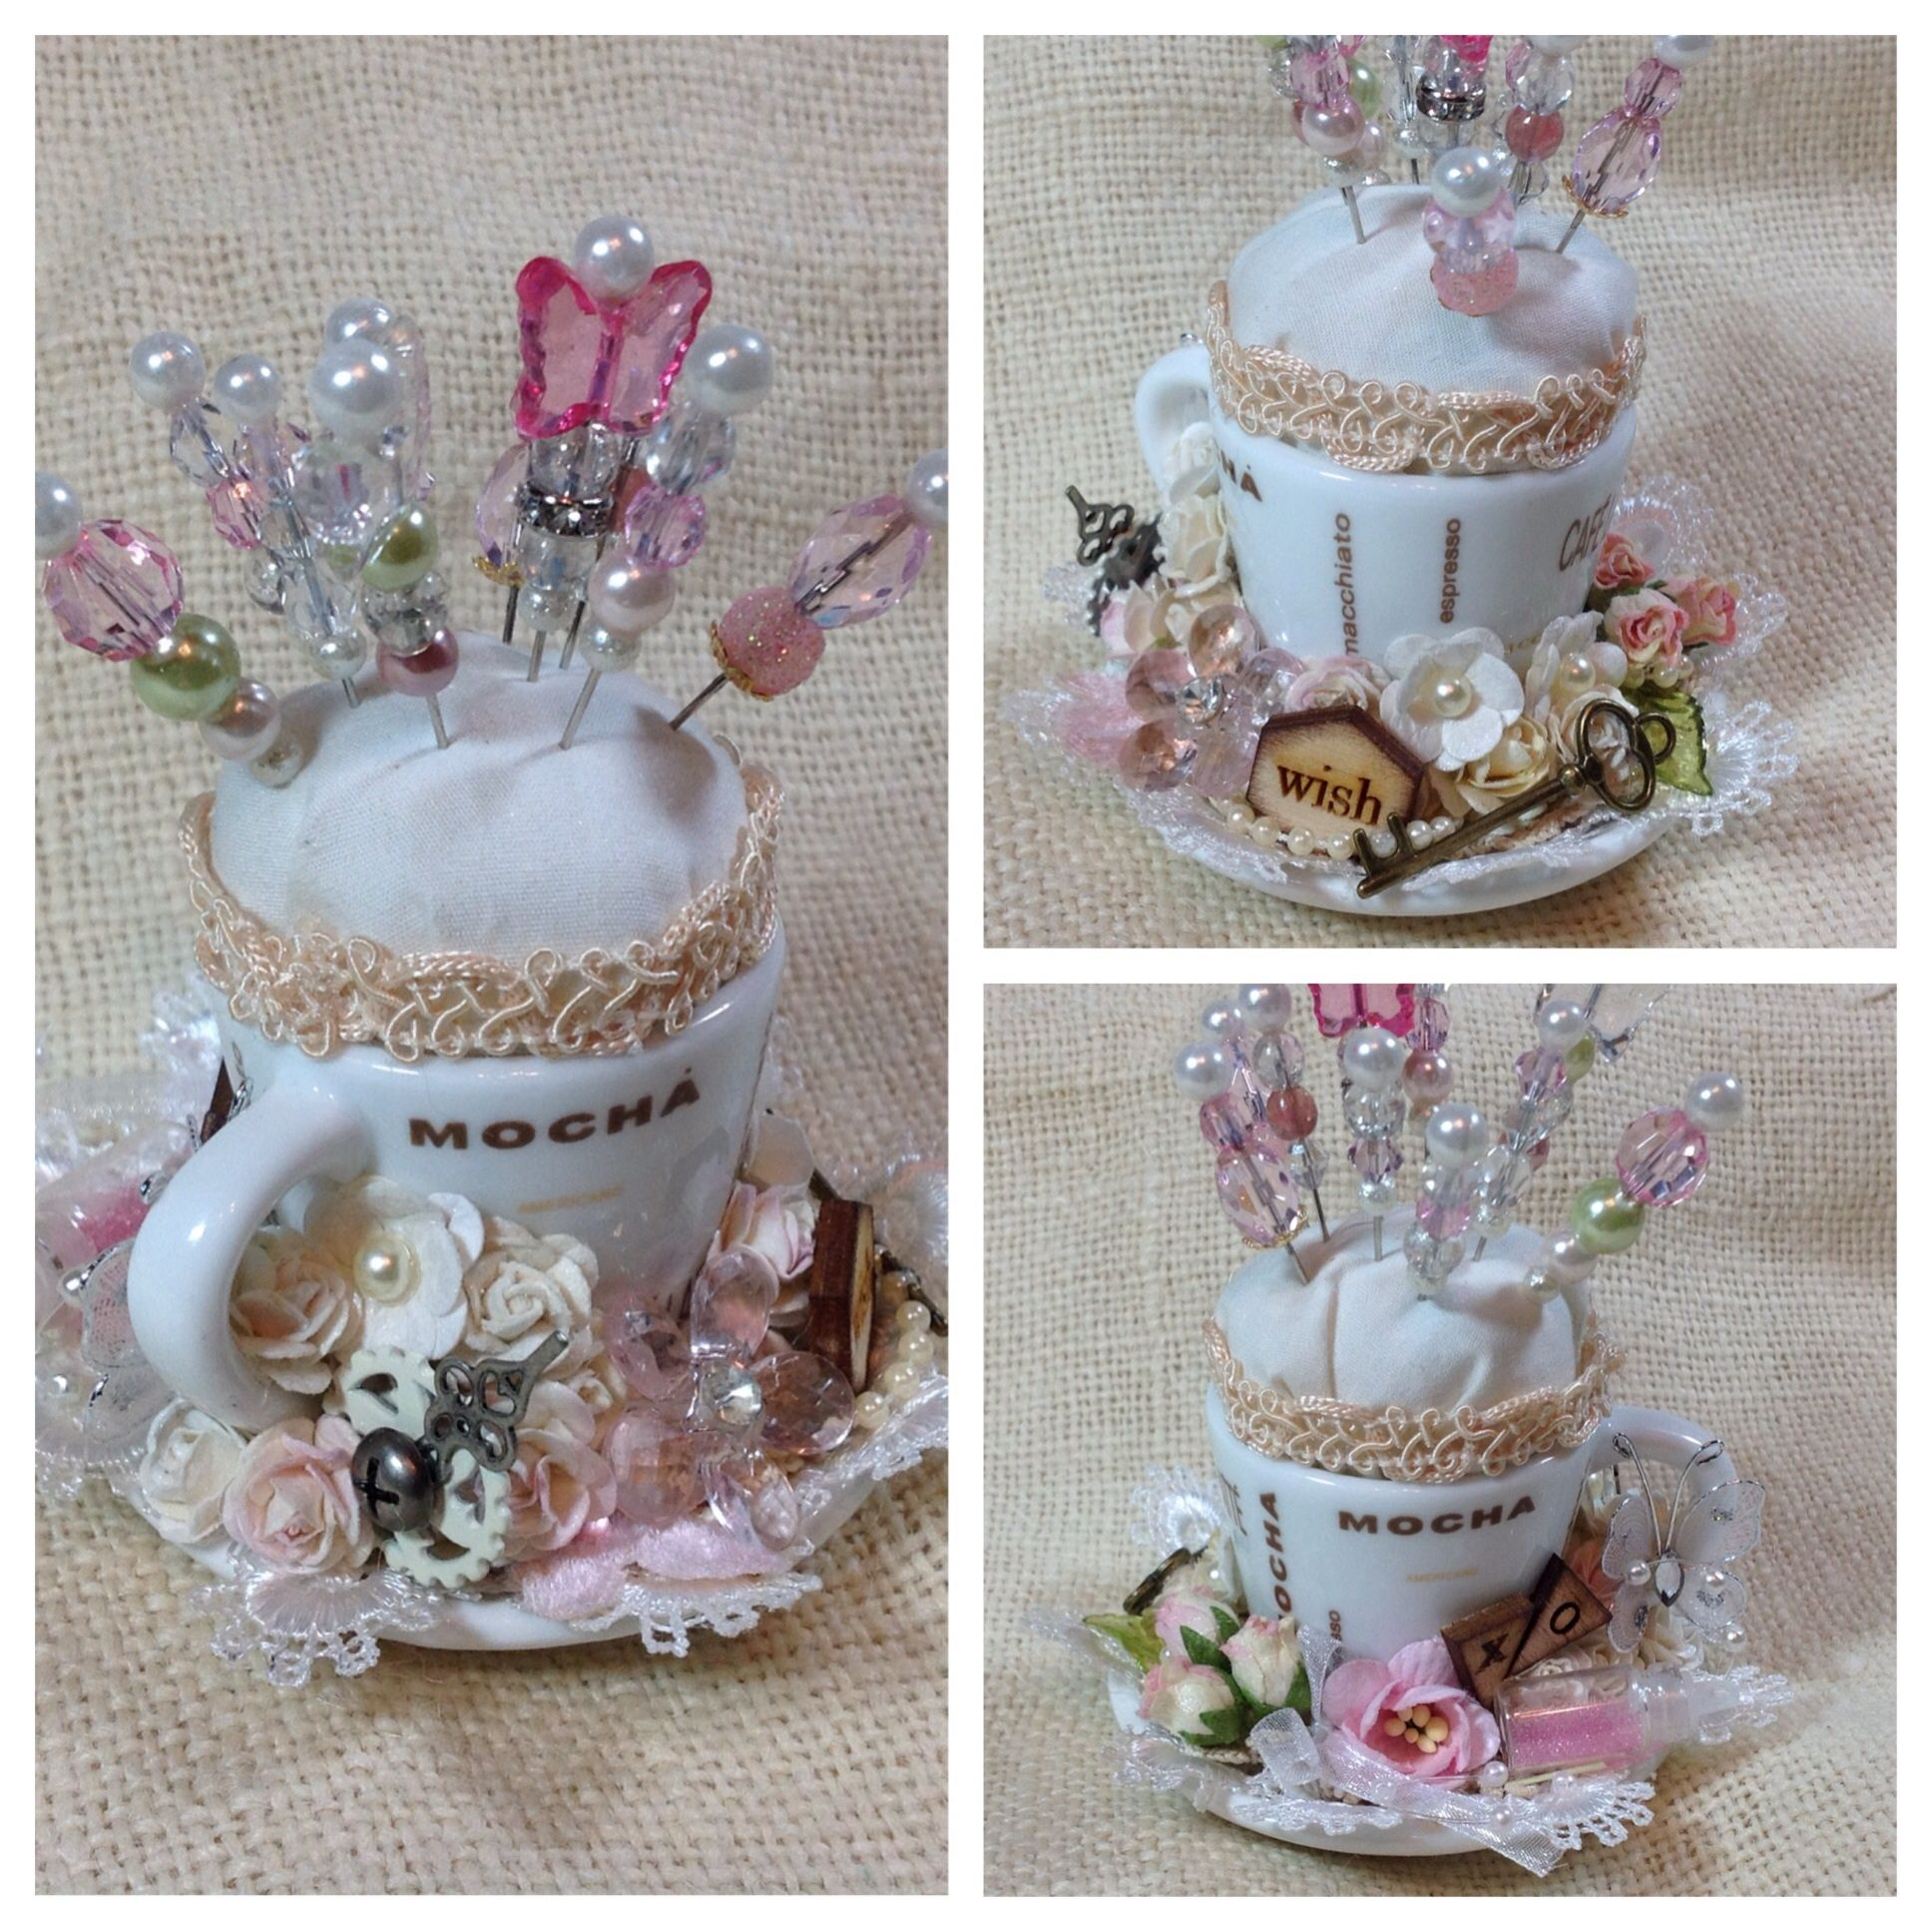 Shabby Chic Pin Cushion using miniature teacup/saucer